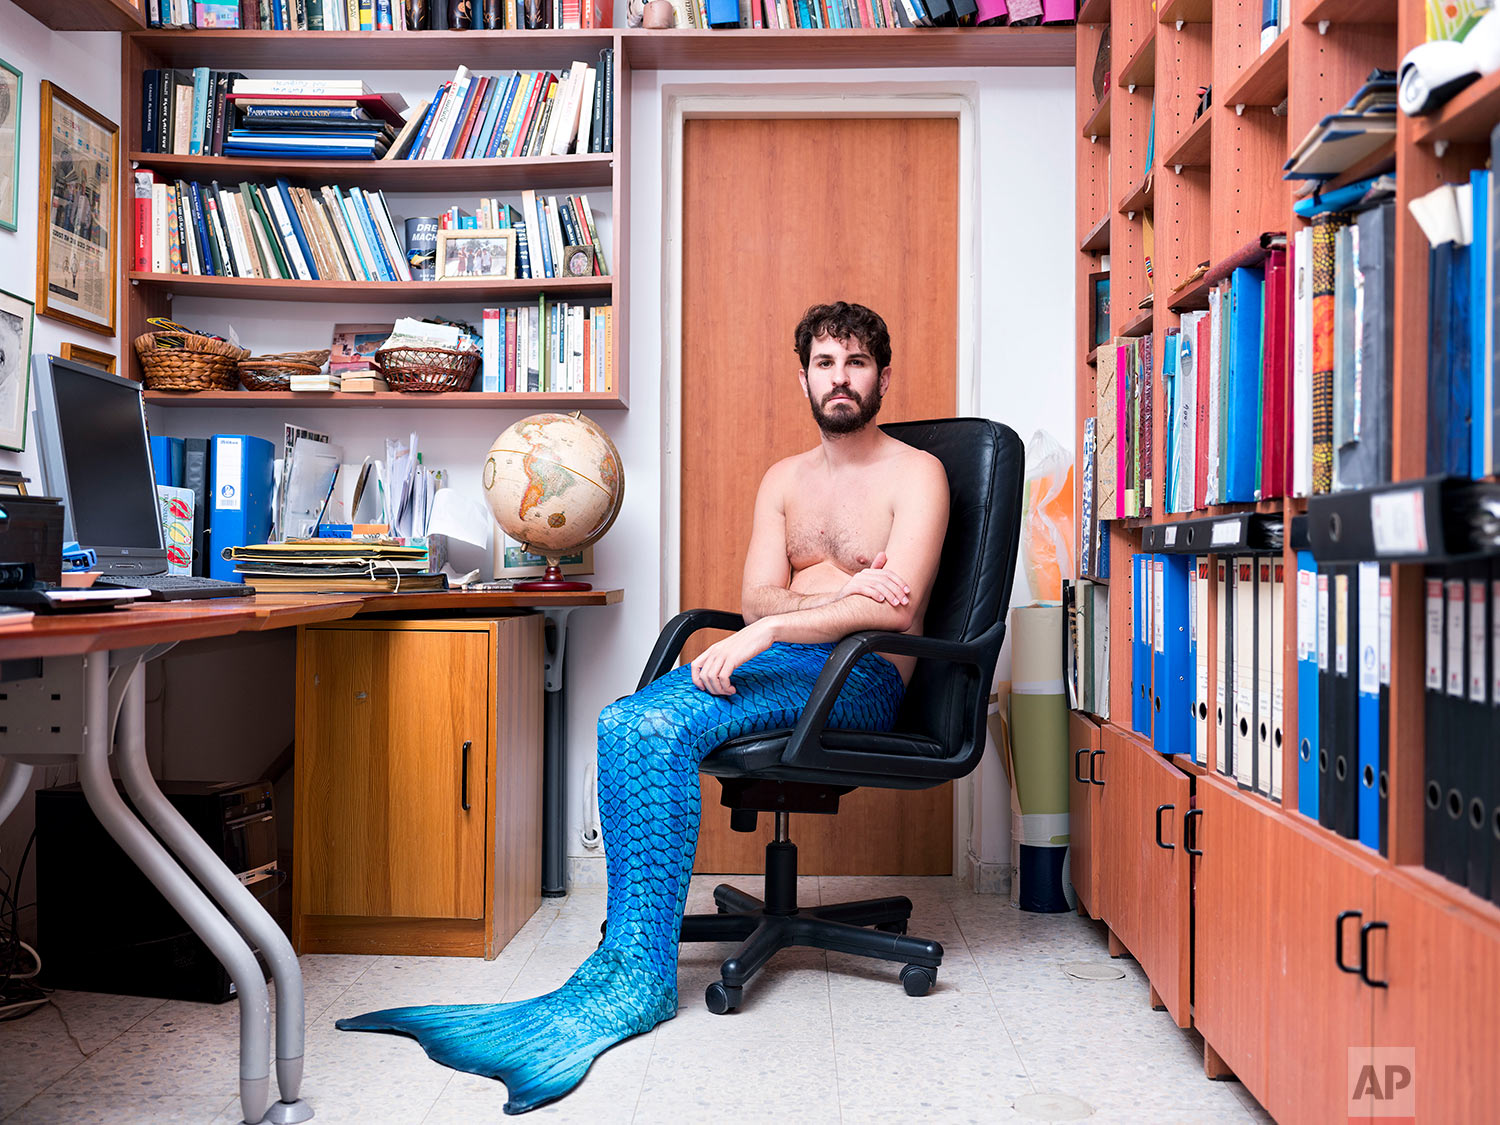 In this Wednesday, Feb. 20, 2019 photo, Yuval Avrami, a member of the Israeli Mermaid Community, poses for a portrait as he wears a mermaid tail at his home in Jerusalem. (AP Photo/Oded Balilty)